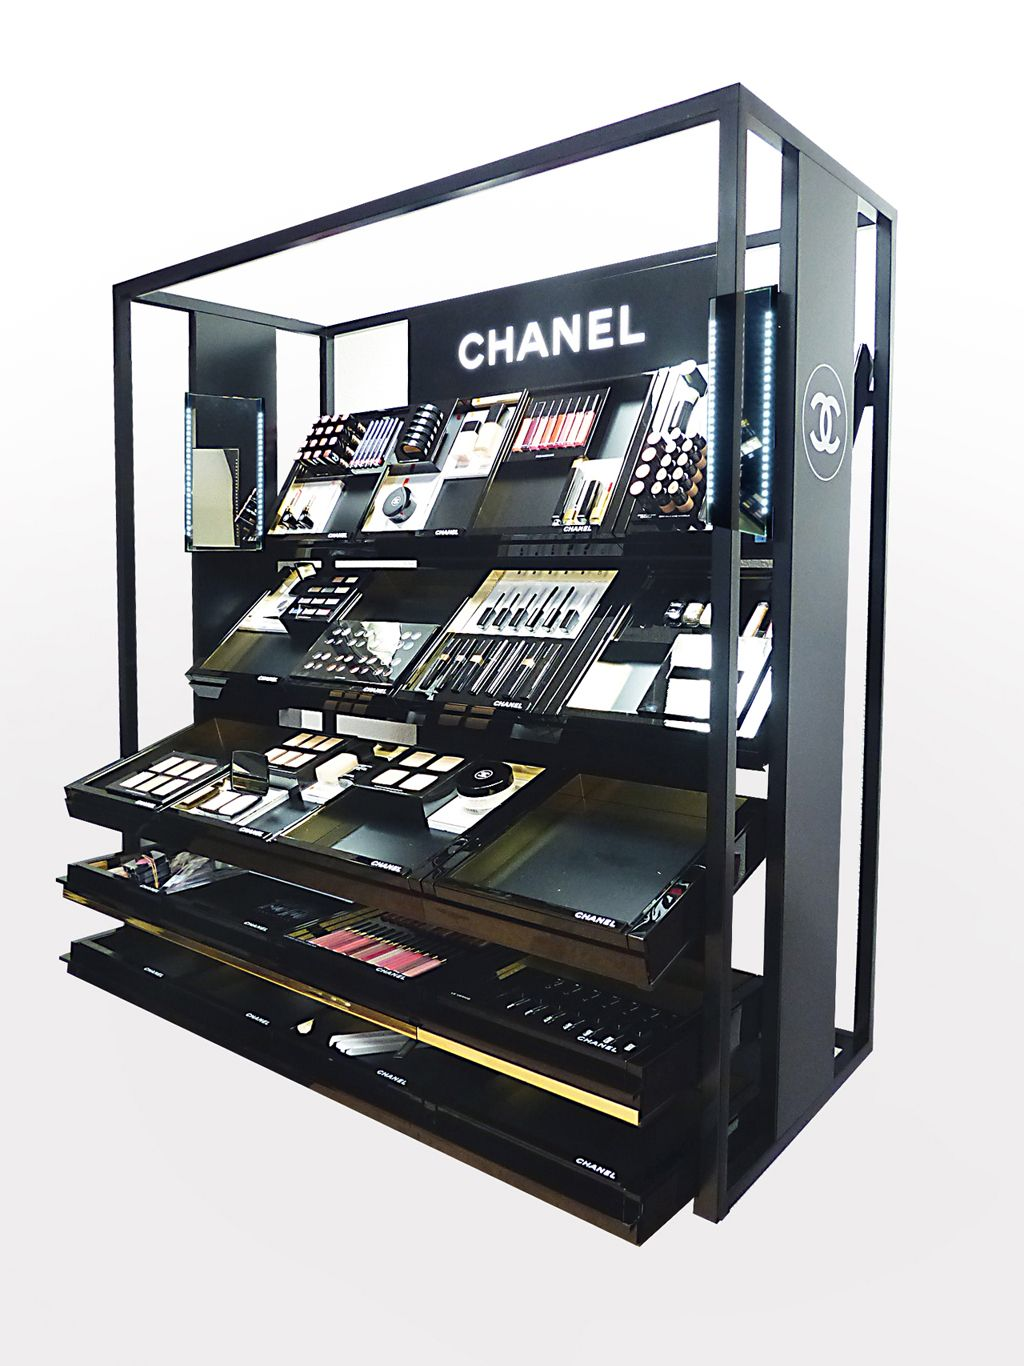 POPAI Awards Paris 2016 - MINI STAND DE COMPTOIR CHANEL #MPV2016